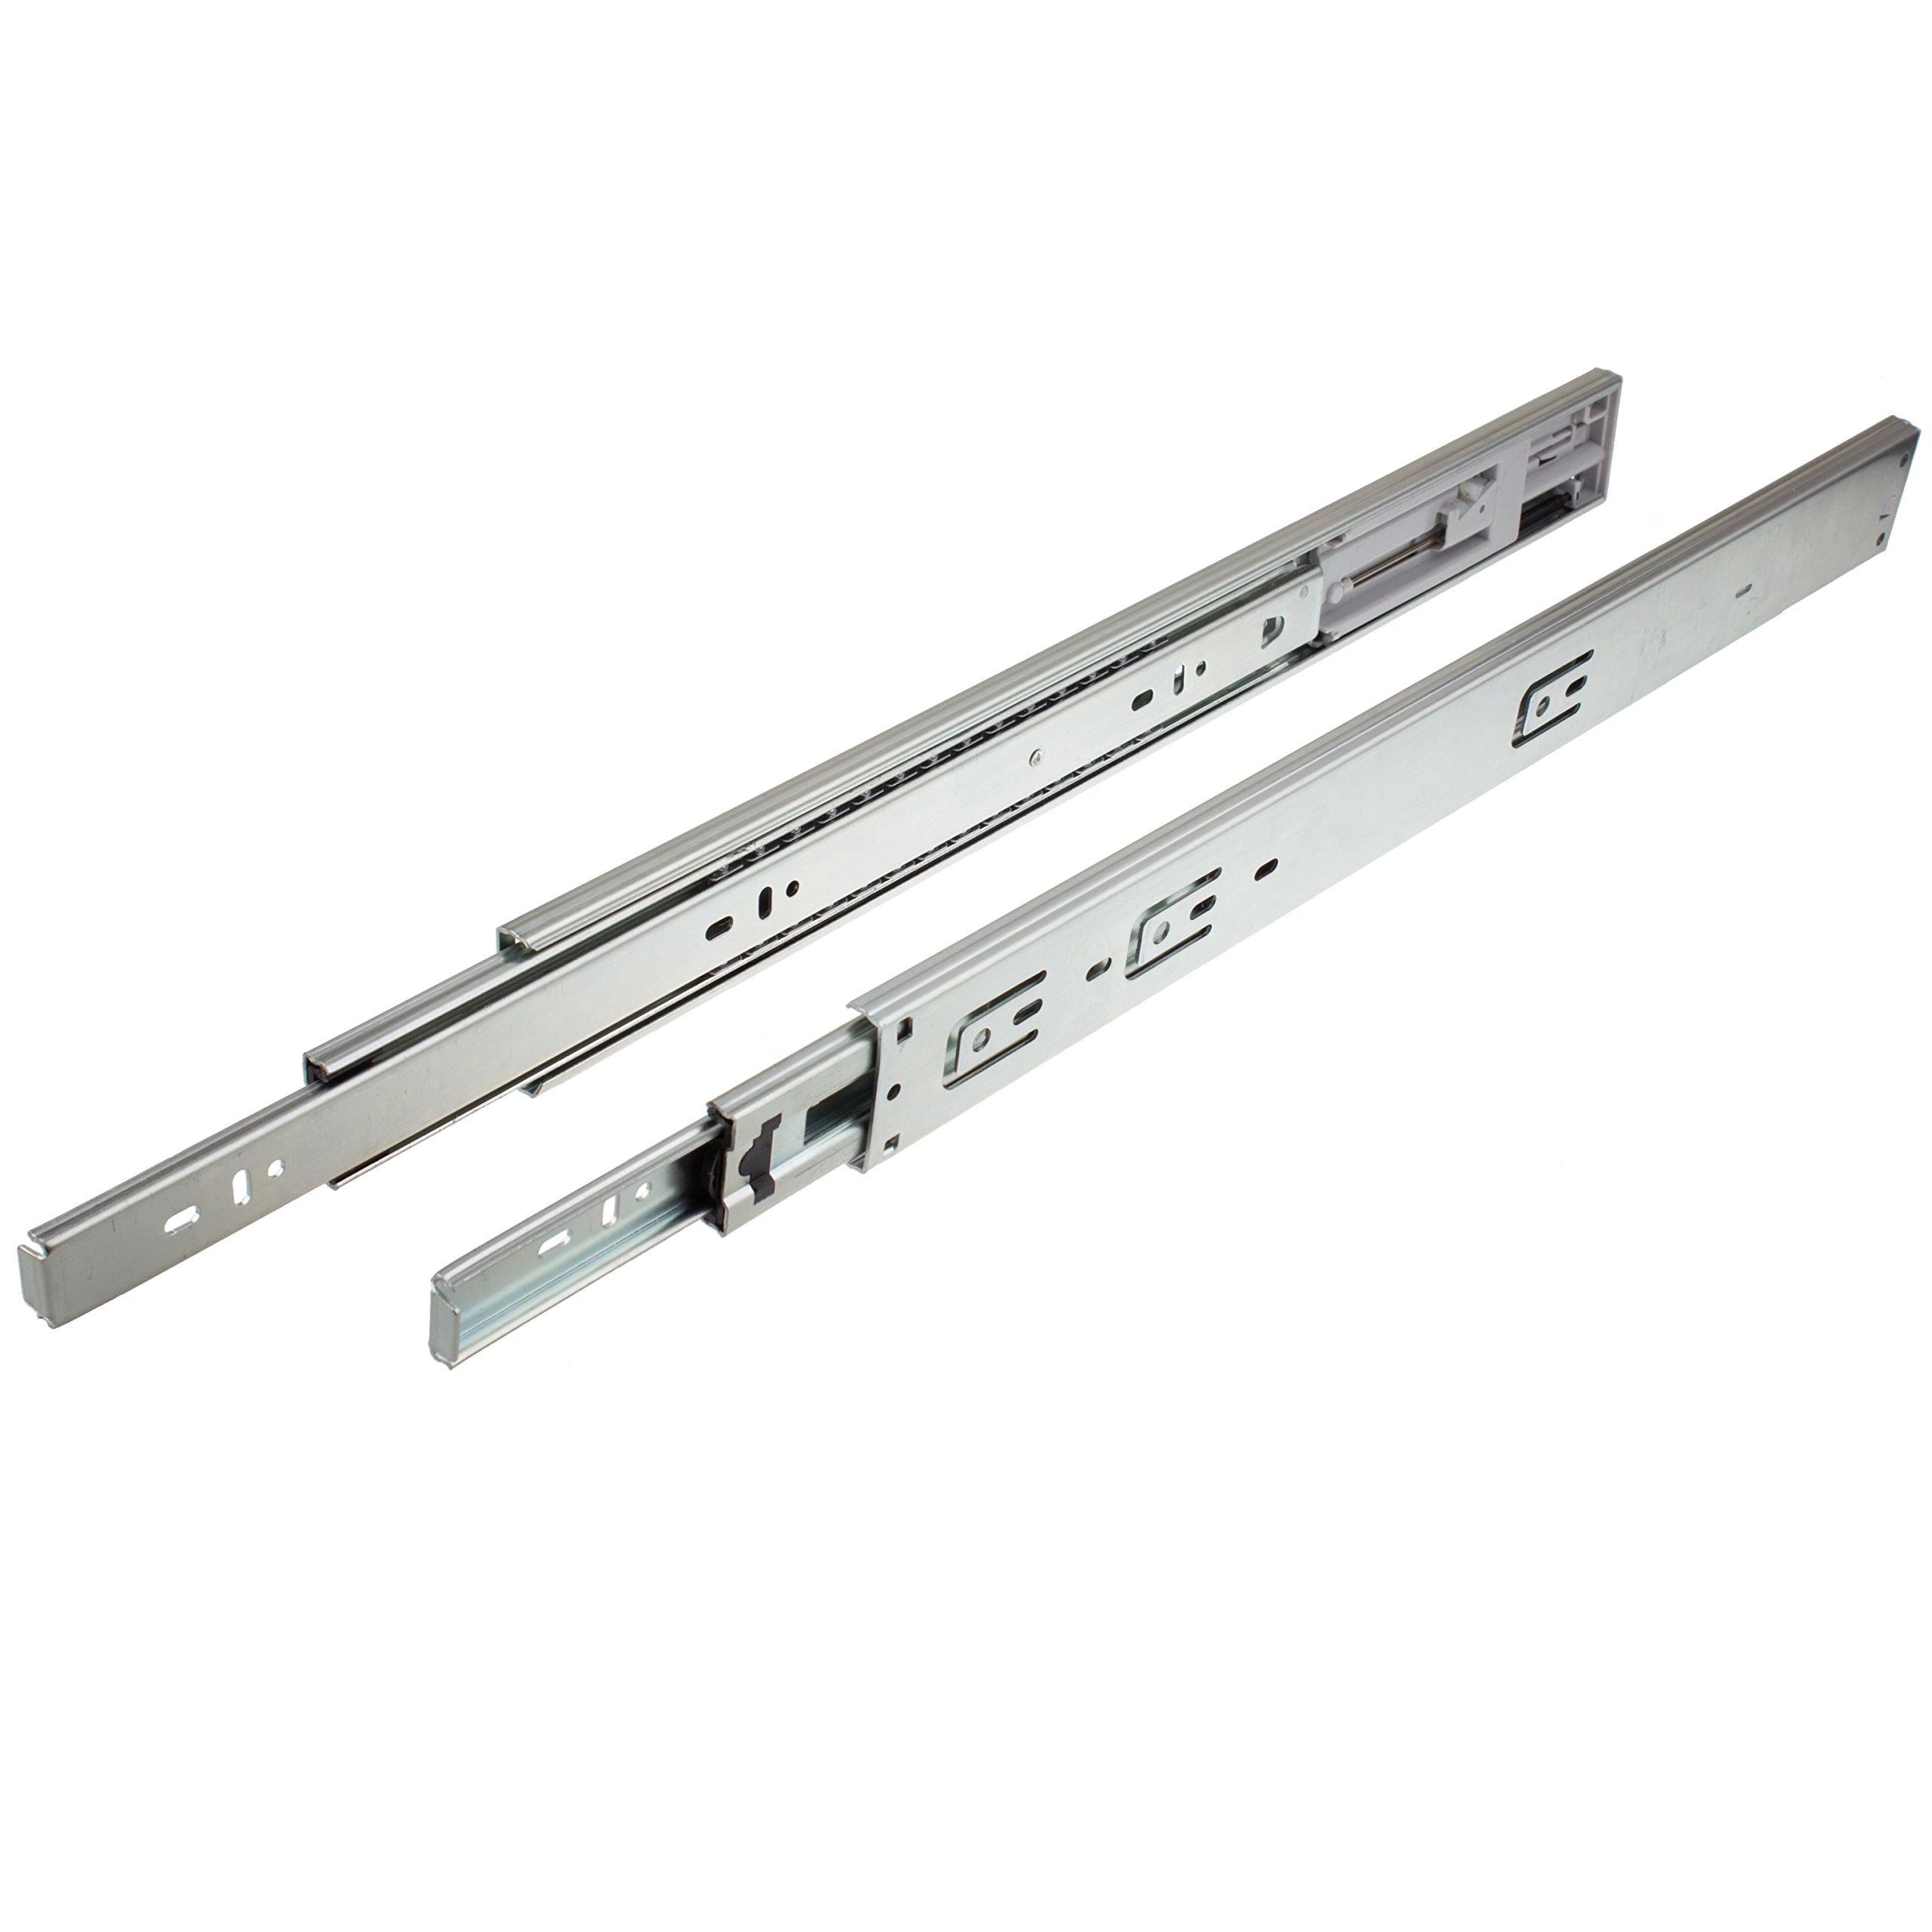 GlideRite Hardware 2275-ZC-10 22 inch Side Mount Soft Close Full Extension Drawer Slides 10 Pack 22'', 100 lb, Silver